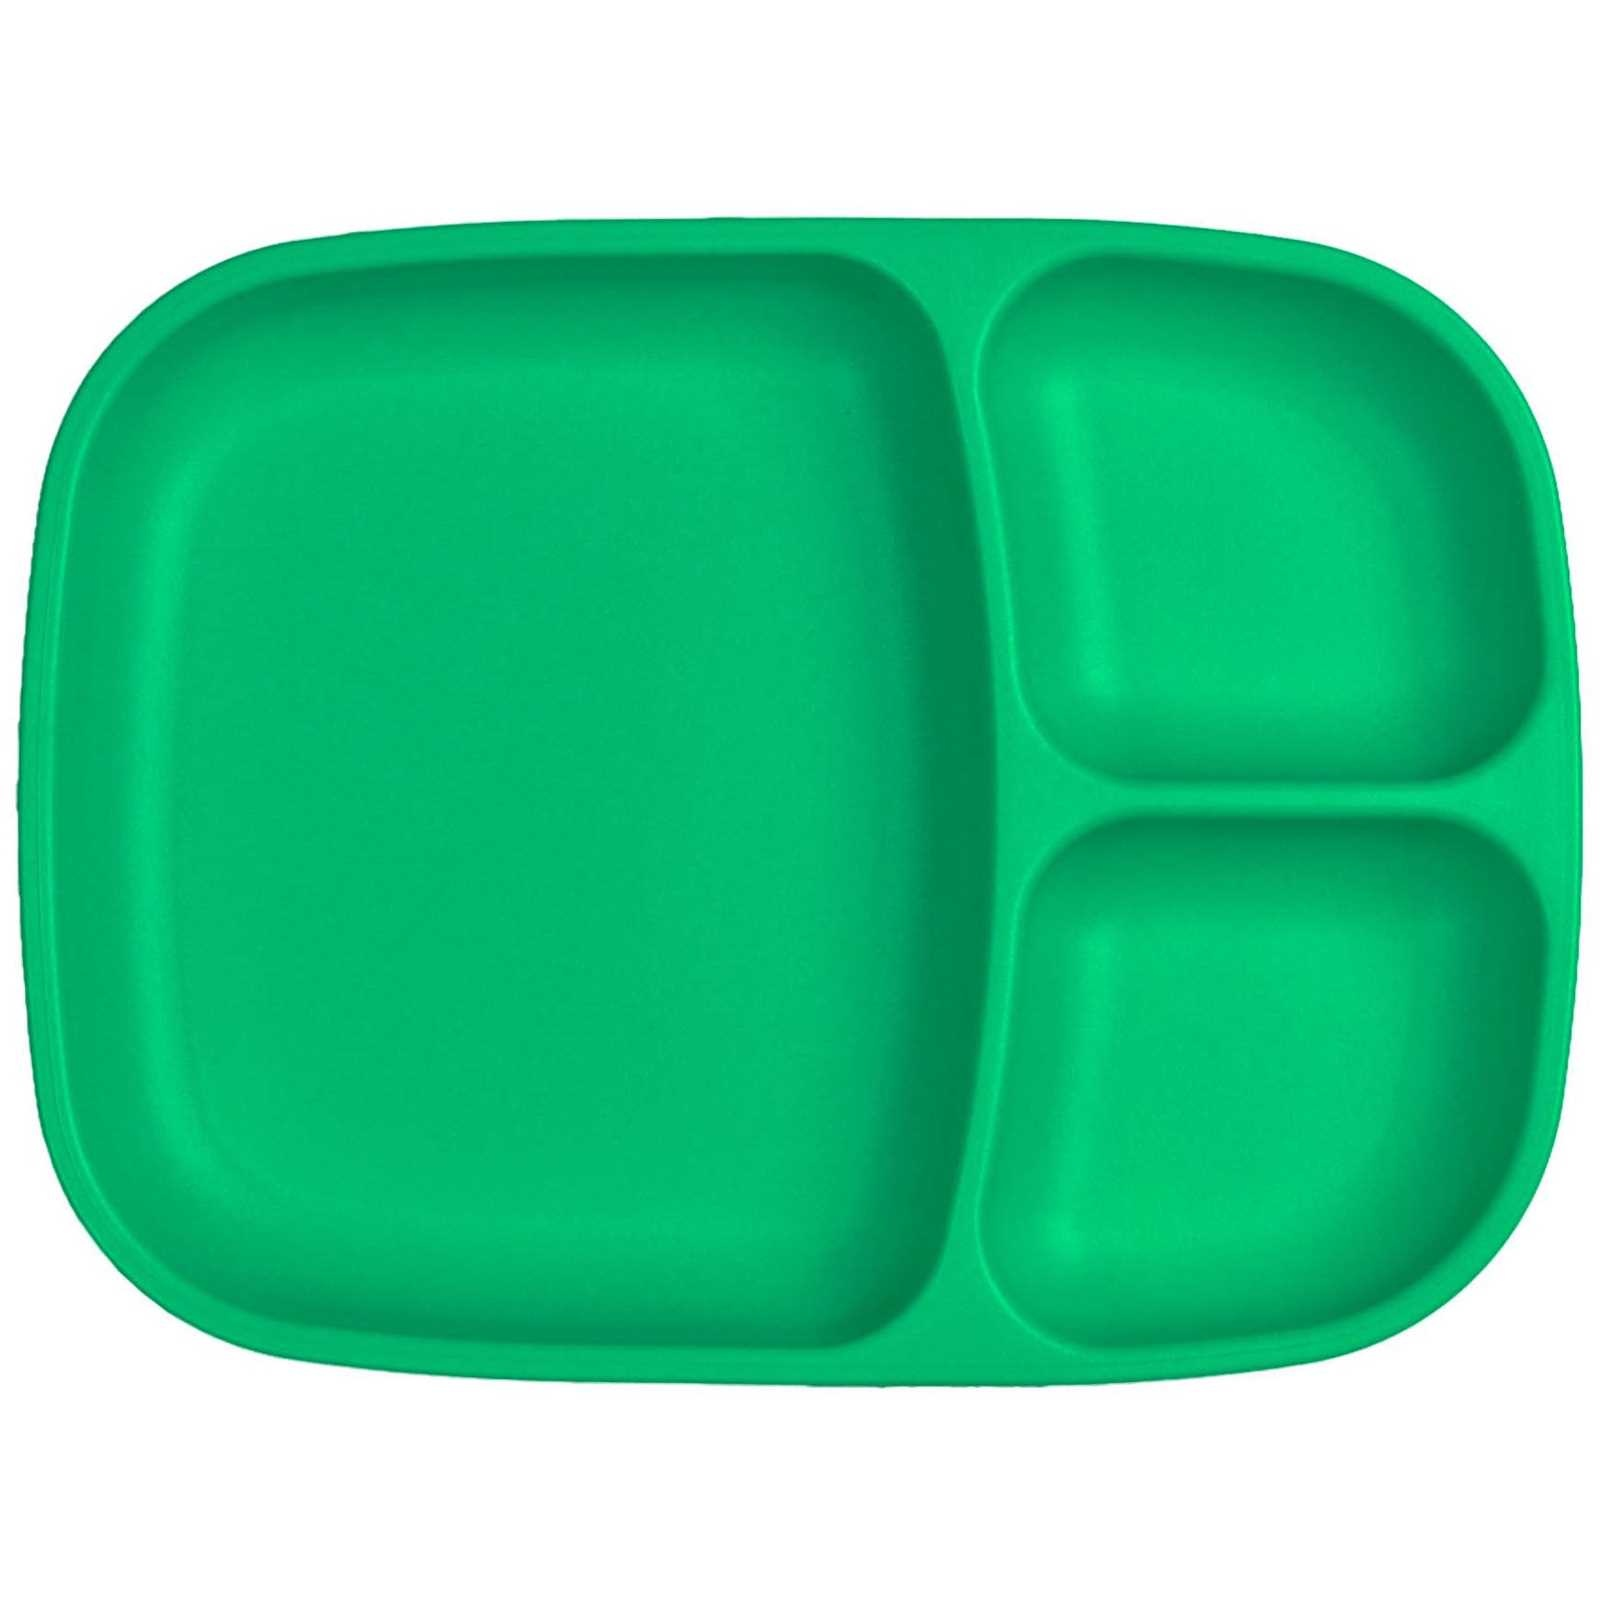 Re-Play Divided Tray - Kelly Green